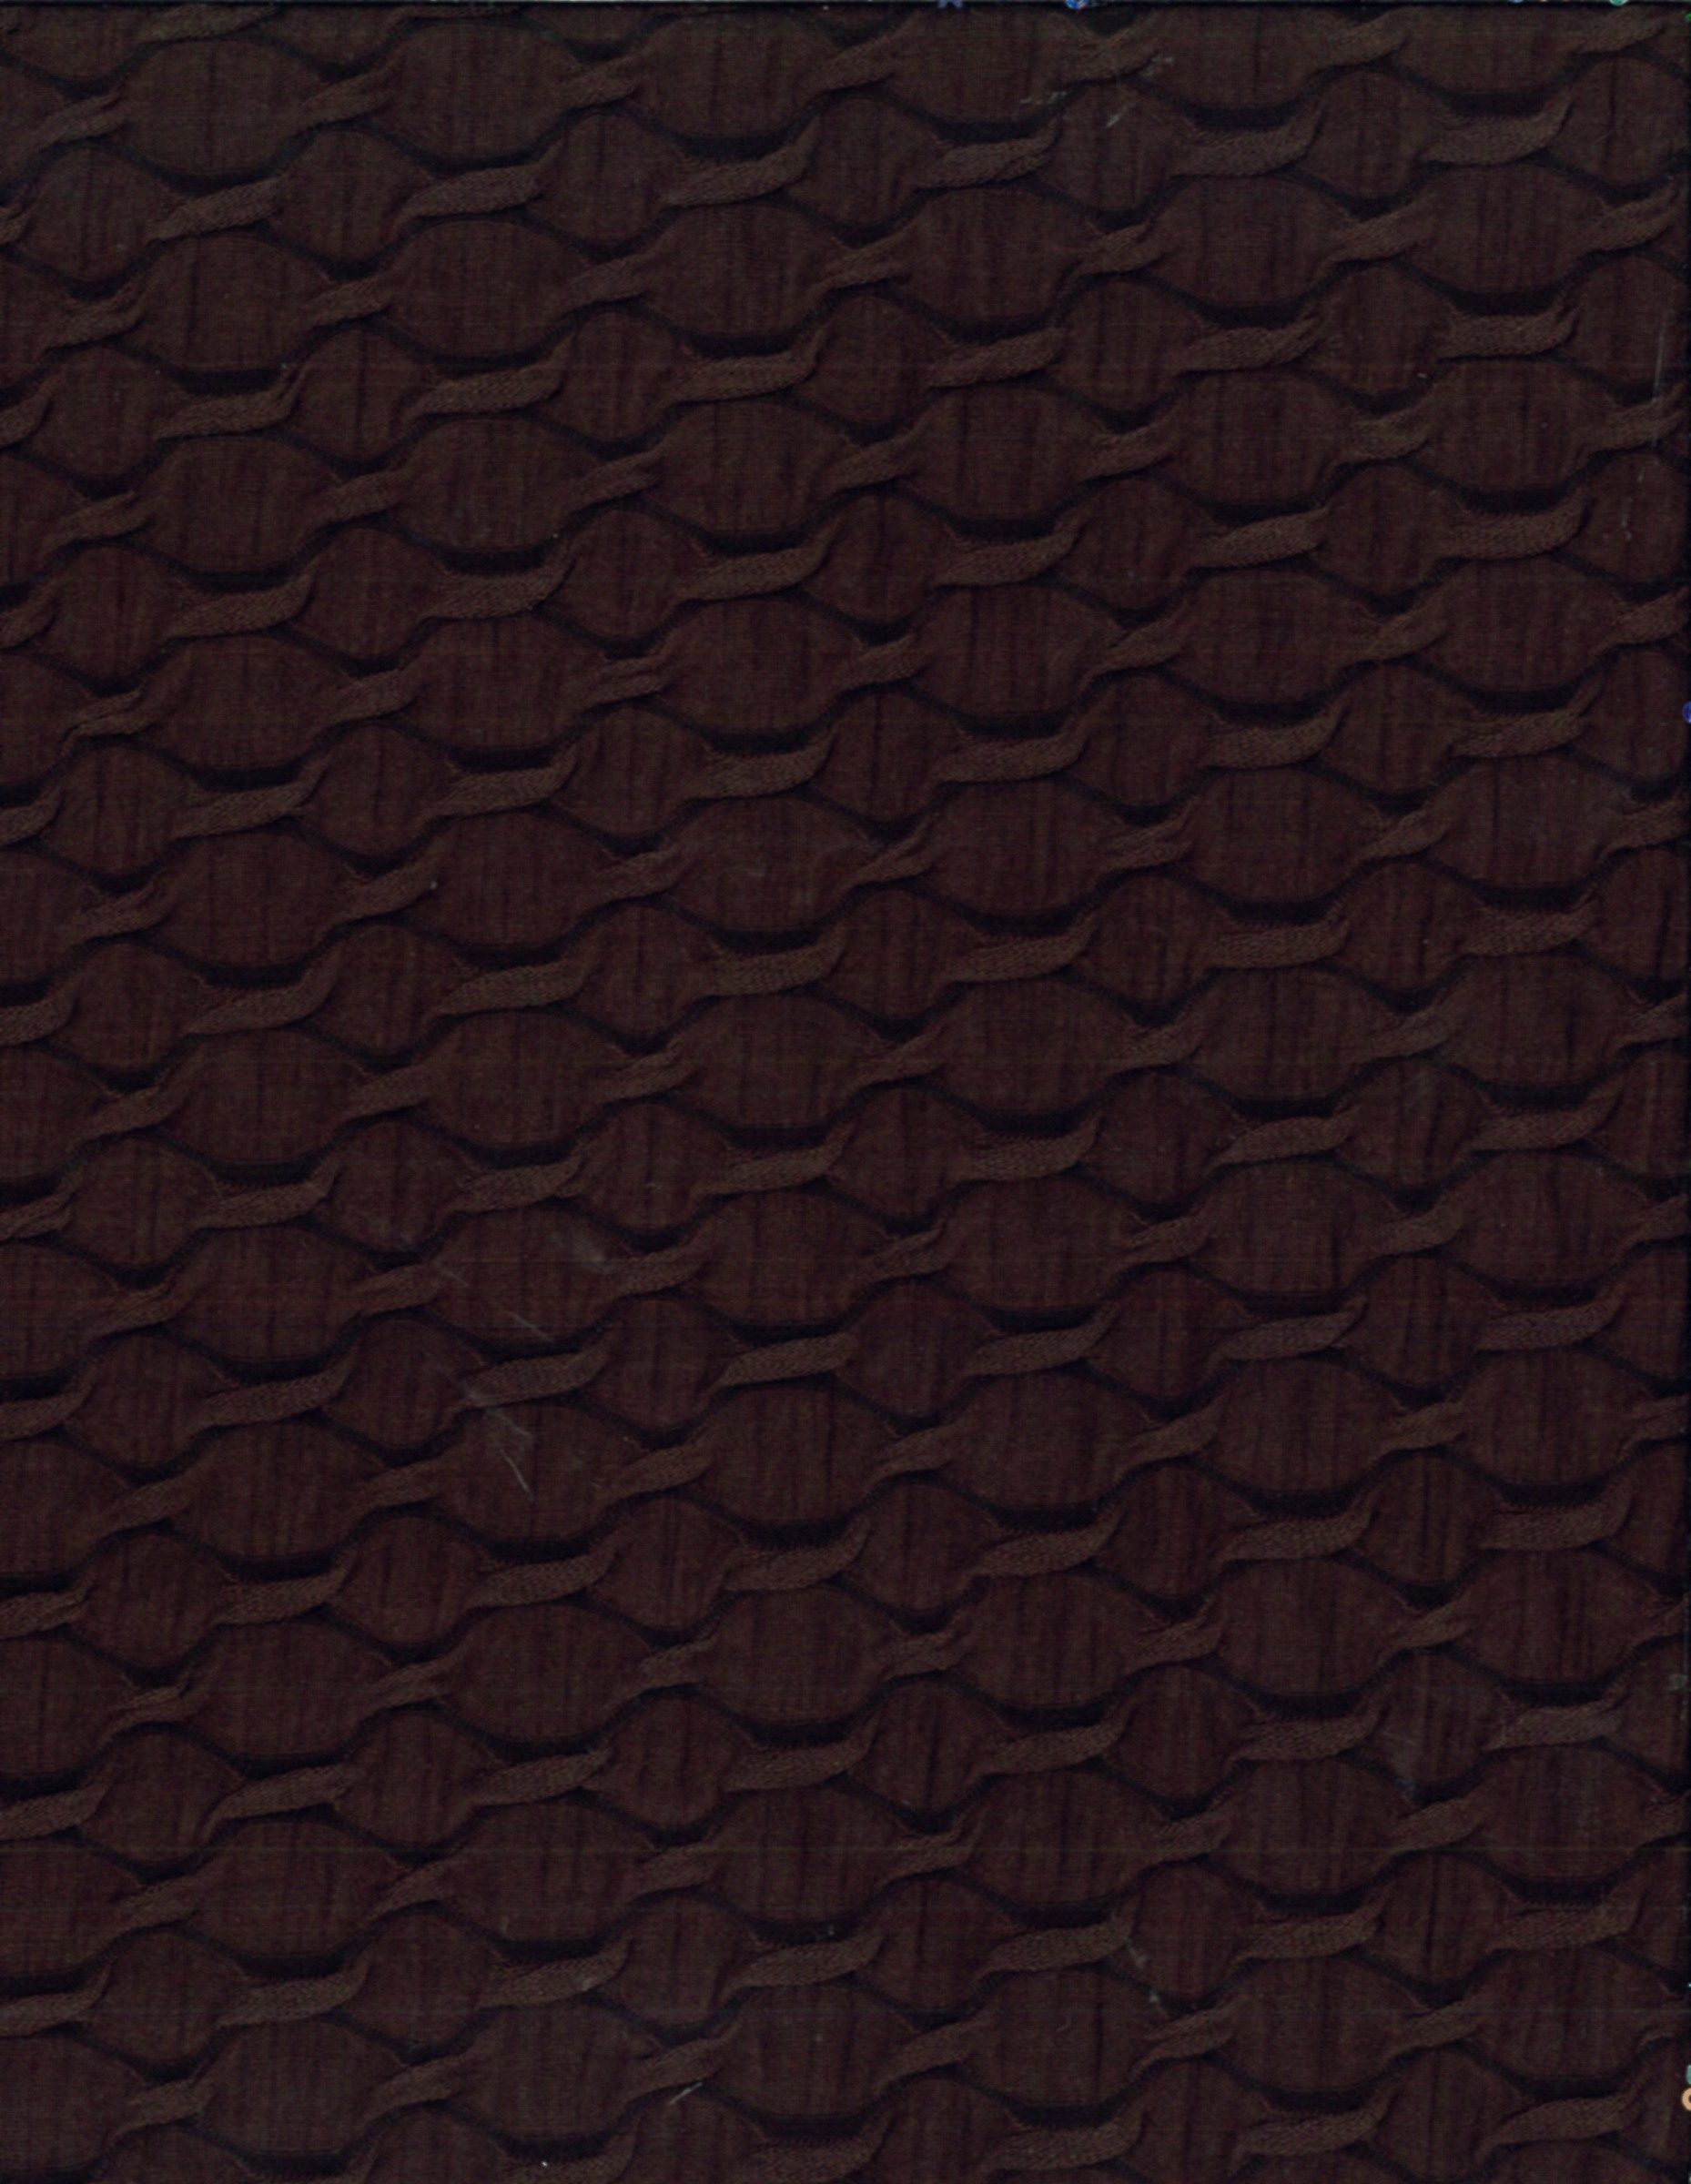 Sew Classics Cotton Fabric- Textured Lattice Knit Chocolate Poly Ray